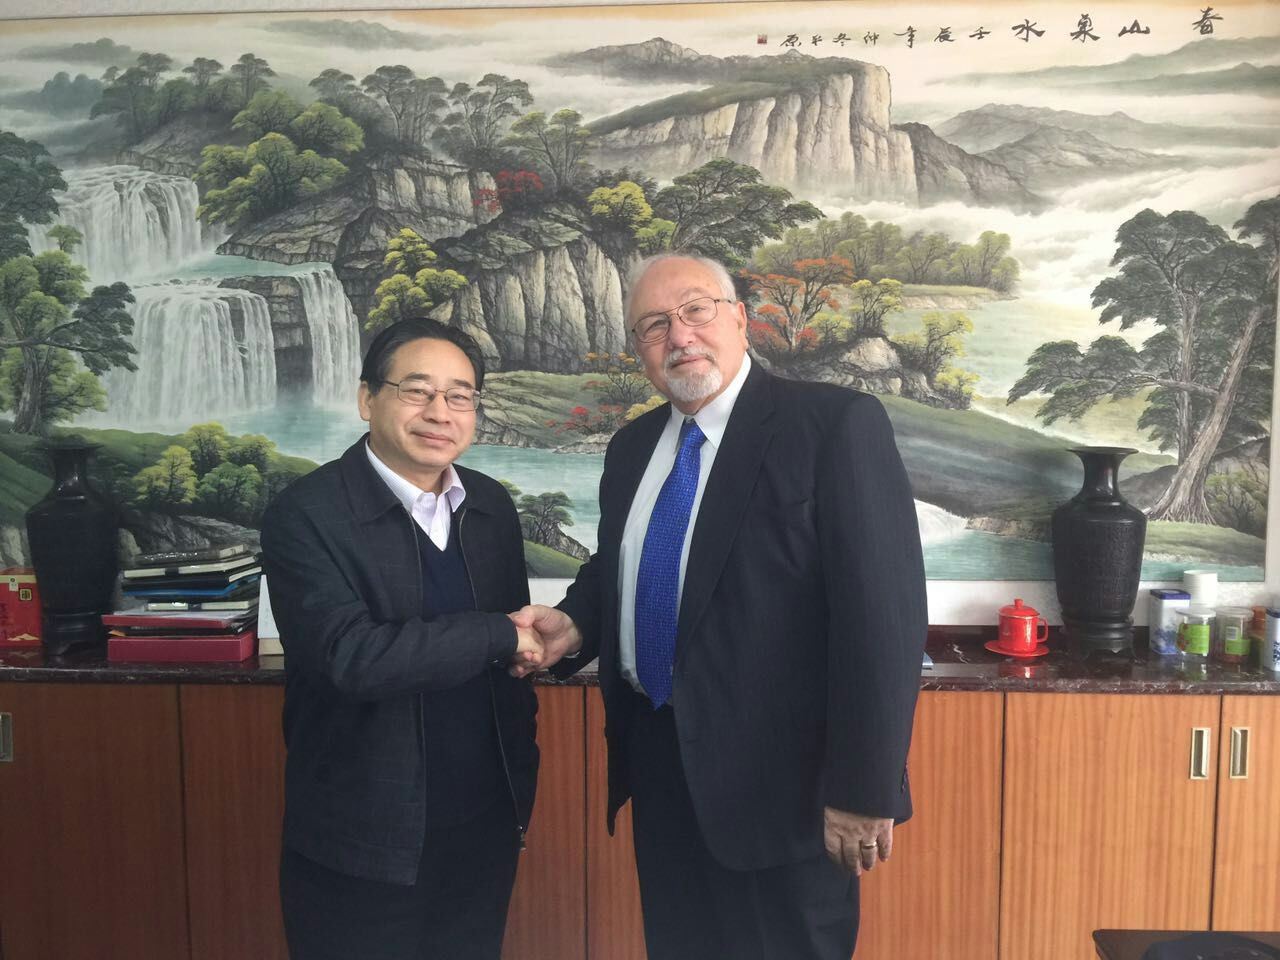 1/22/2016 Jim Savley, President of Small World, met with old friend Director Jaung of the CCCWA Small World has increased in every area of it's partnership with China's Adoption programs and is moving forward with Bold new initiatives to the delight of CCCWA